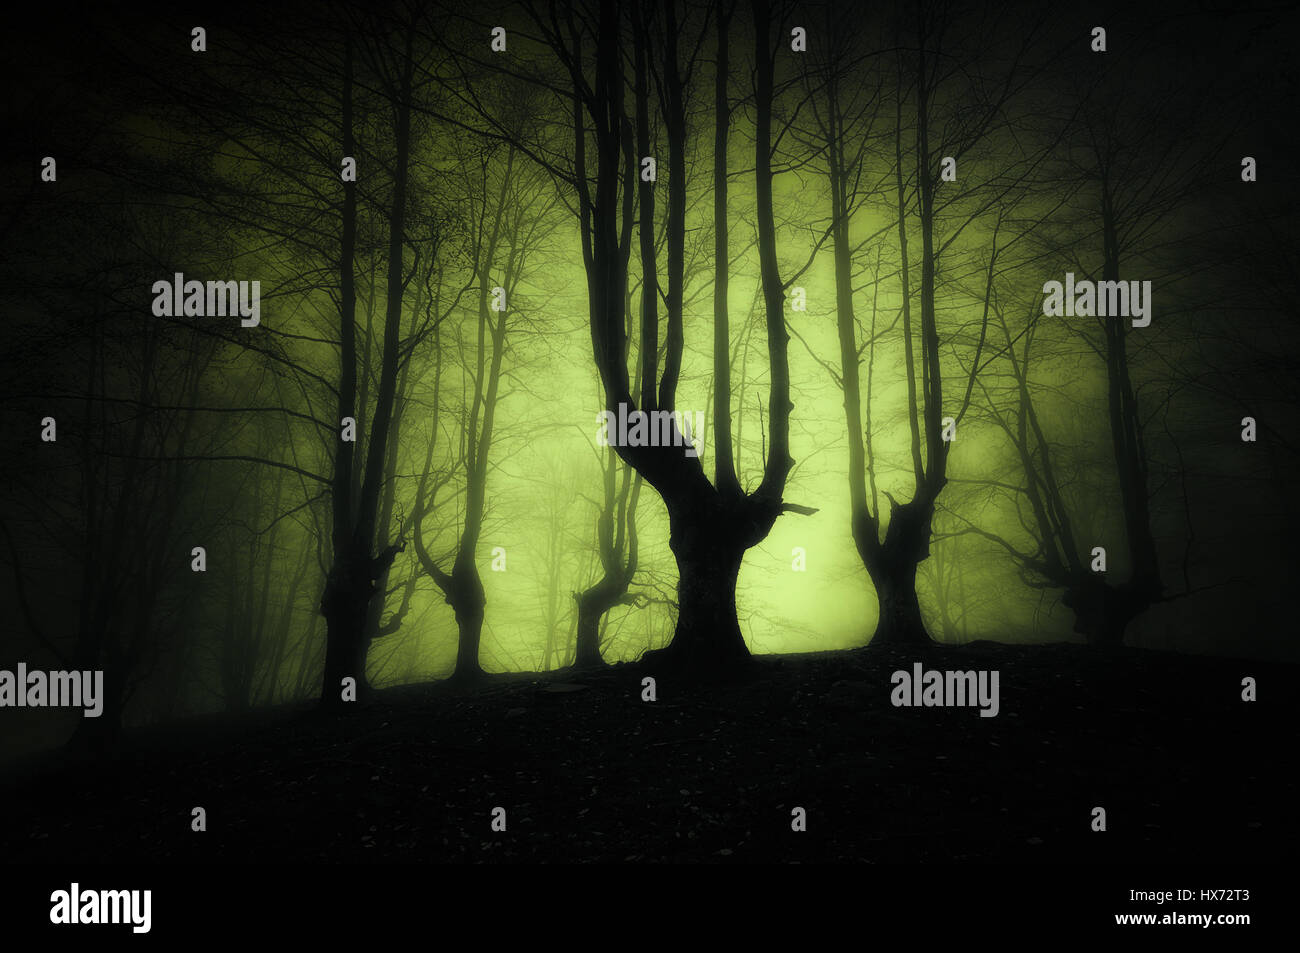 dark forest with scary trees - Stock Image